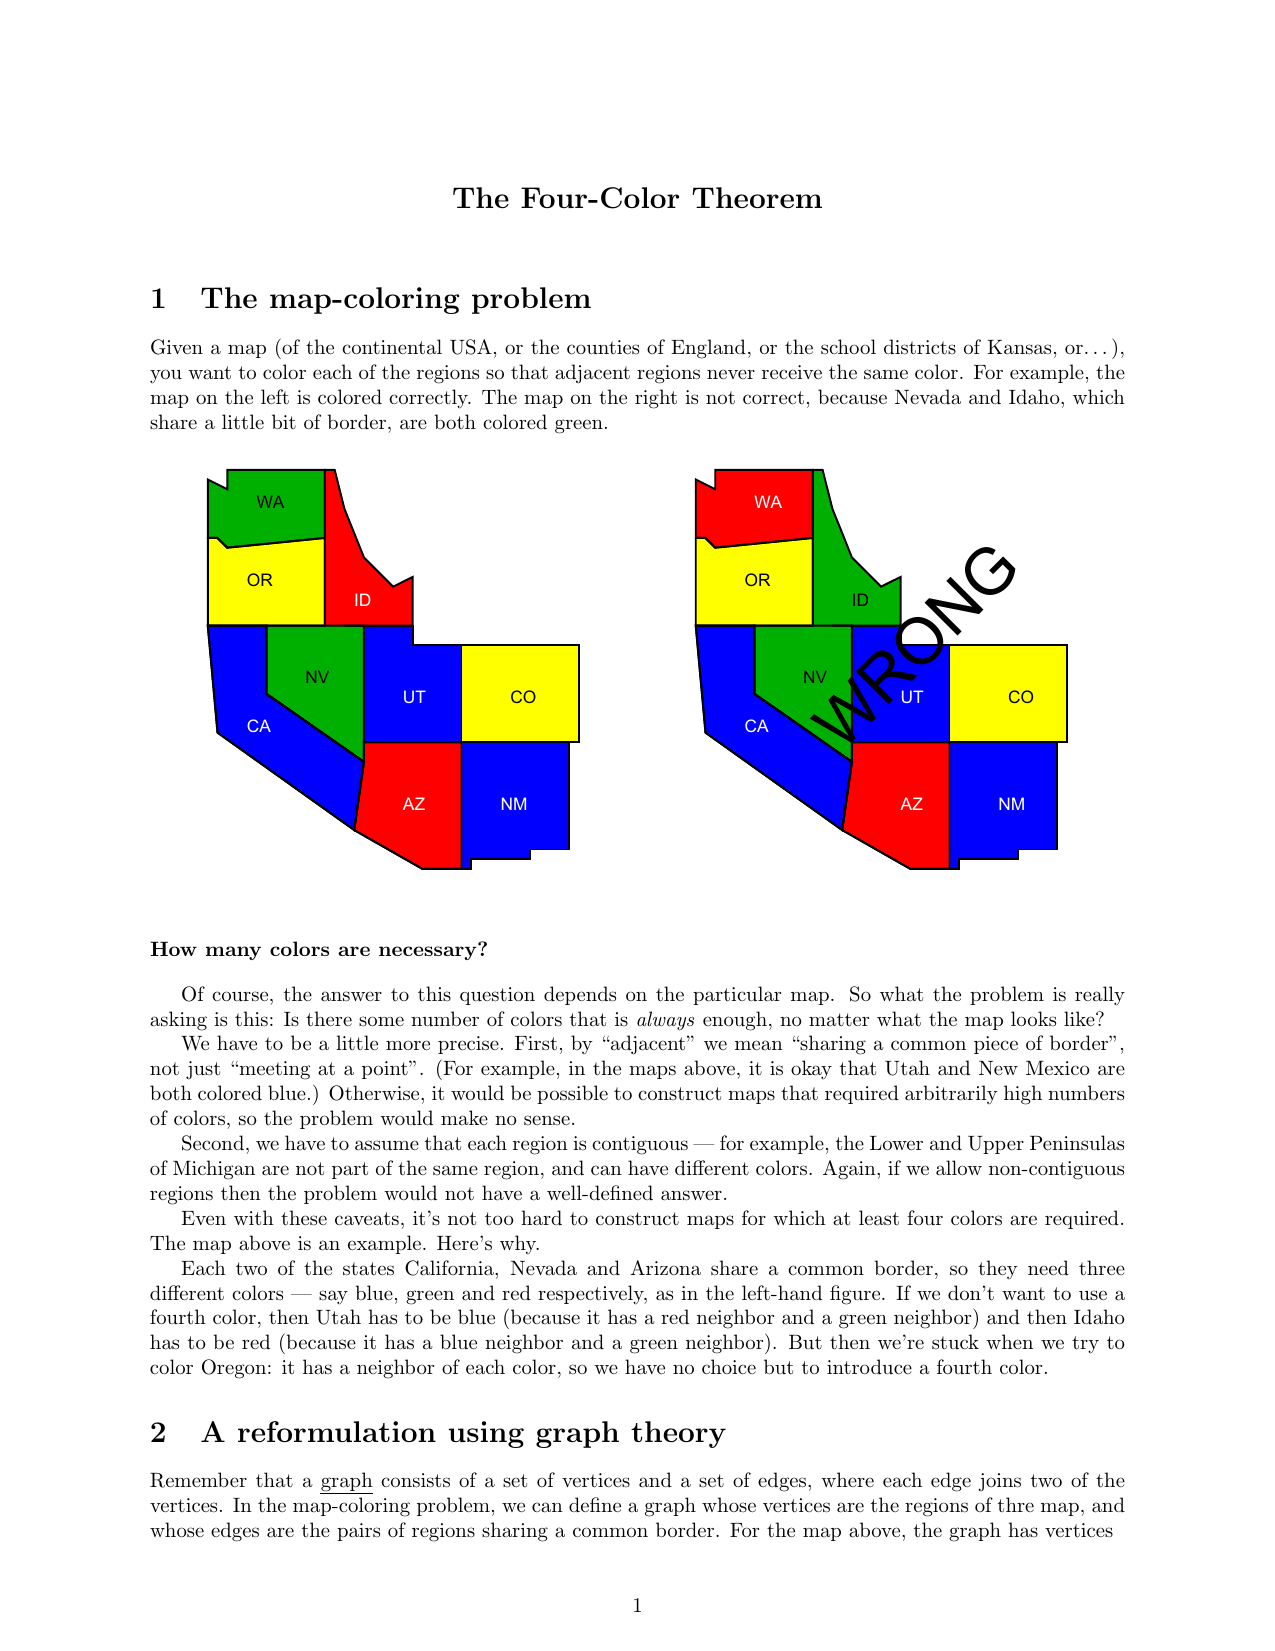 The Four Color Theorem 1 The Map